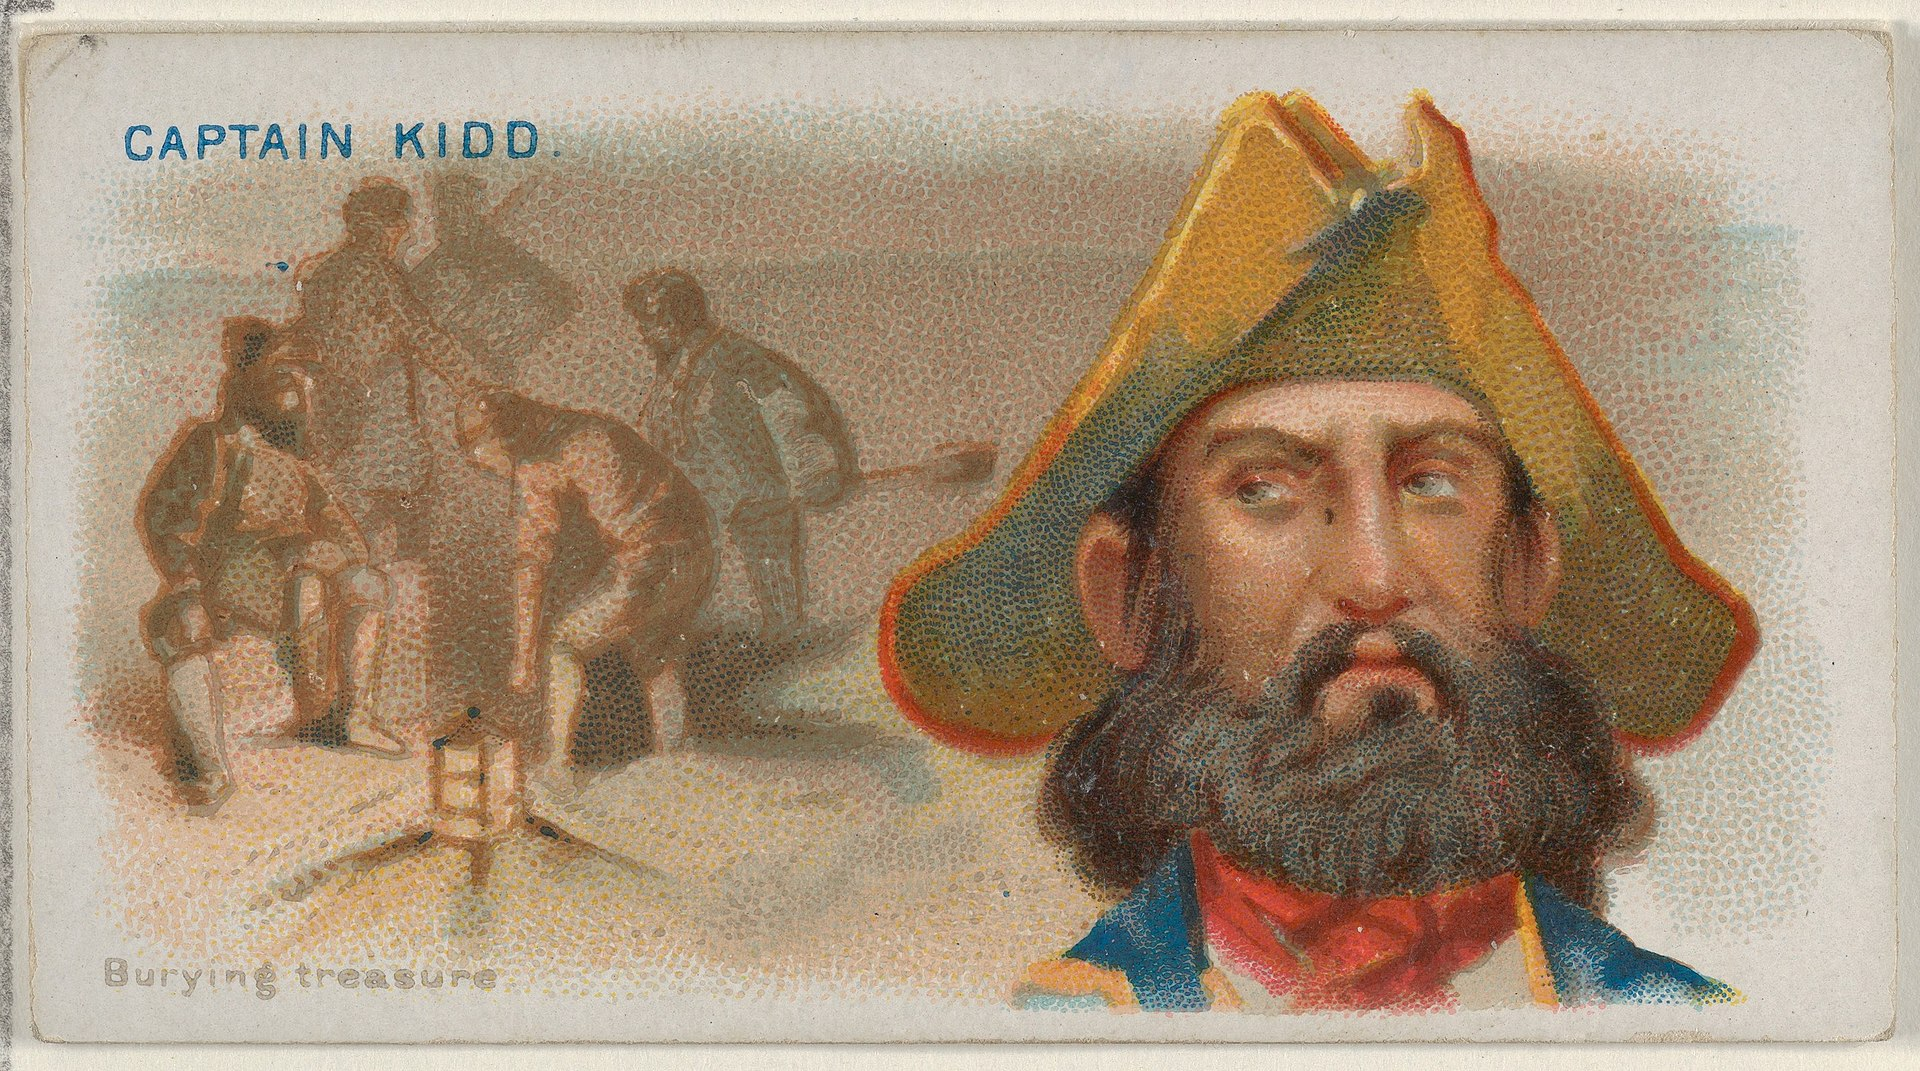 Captain Kidd, Burying Treasure, from the Pirates of the Spanish Main series (N19) for Allen & Ginter Cigarettes